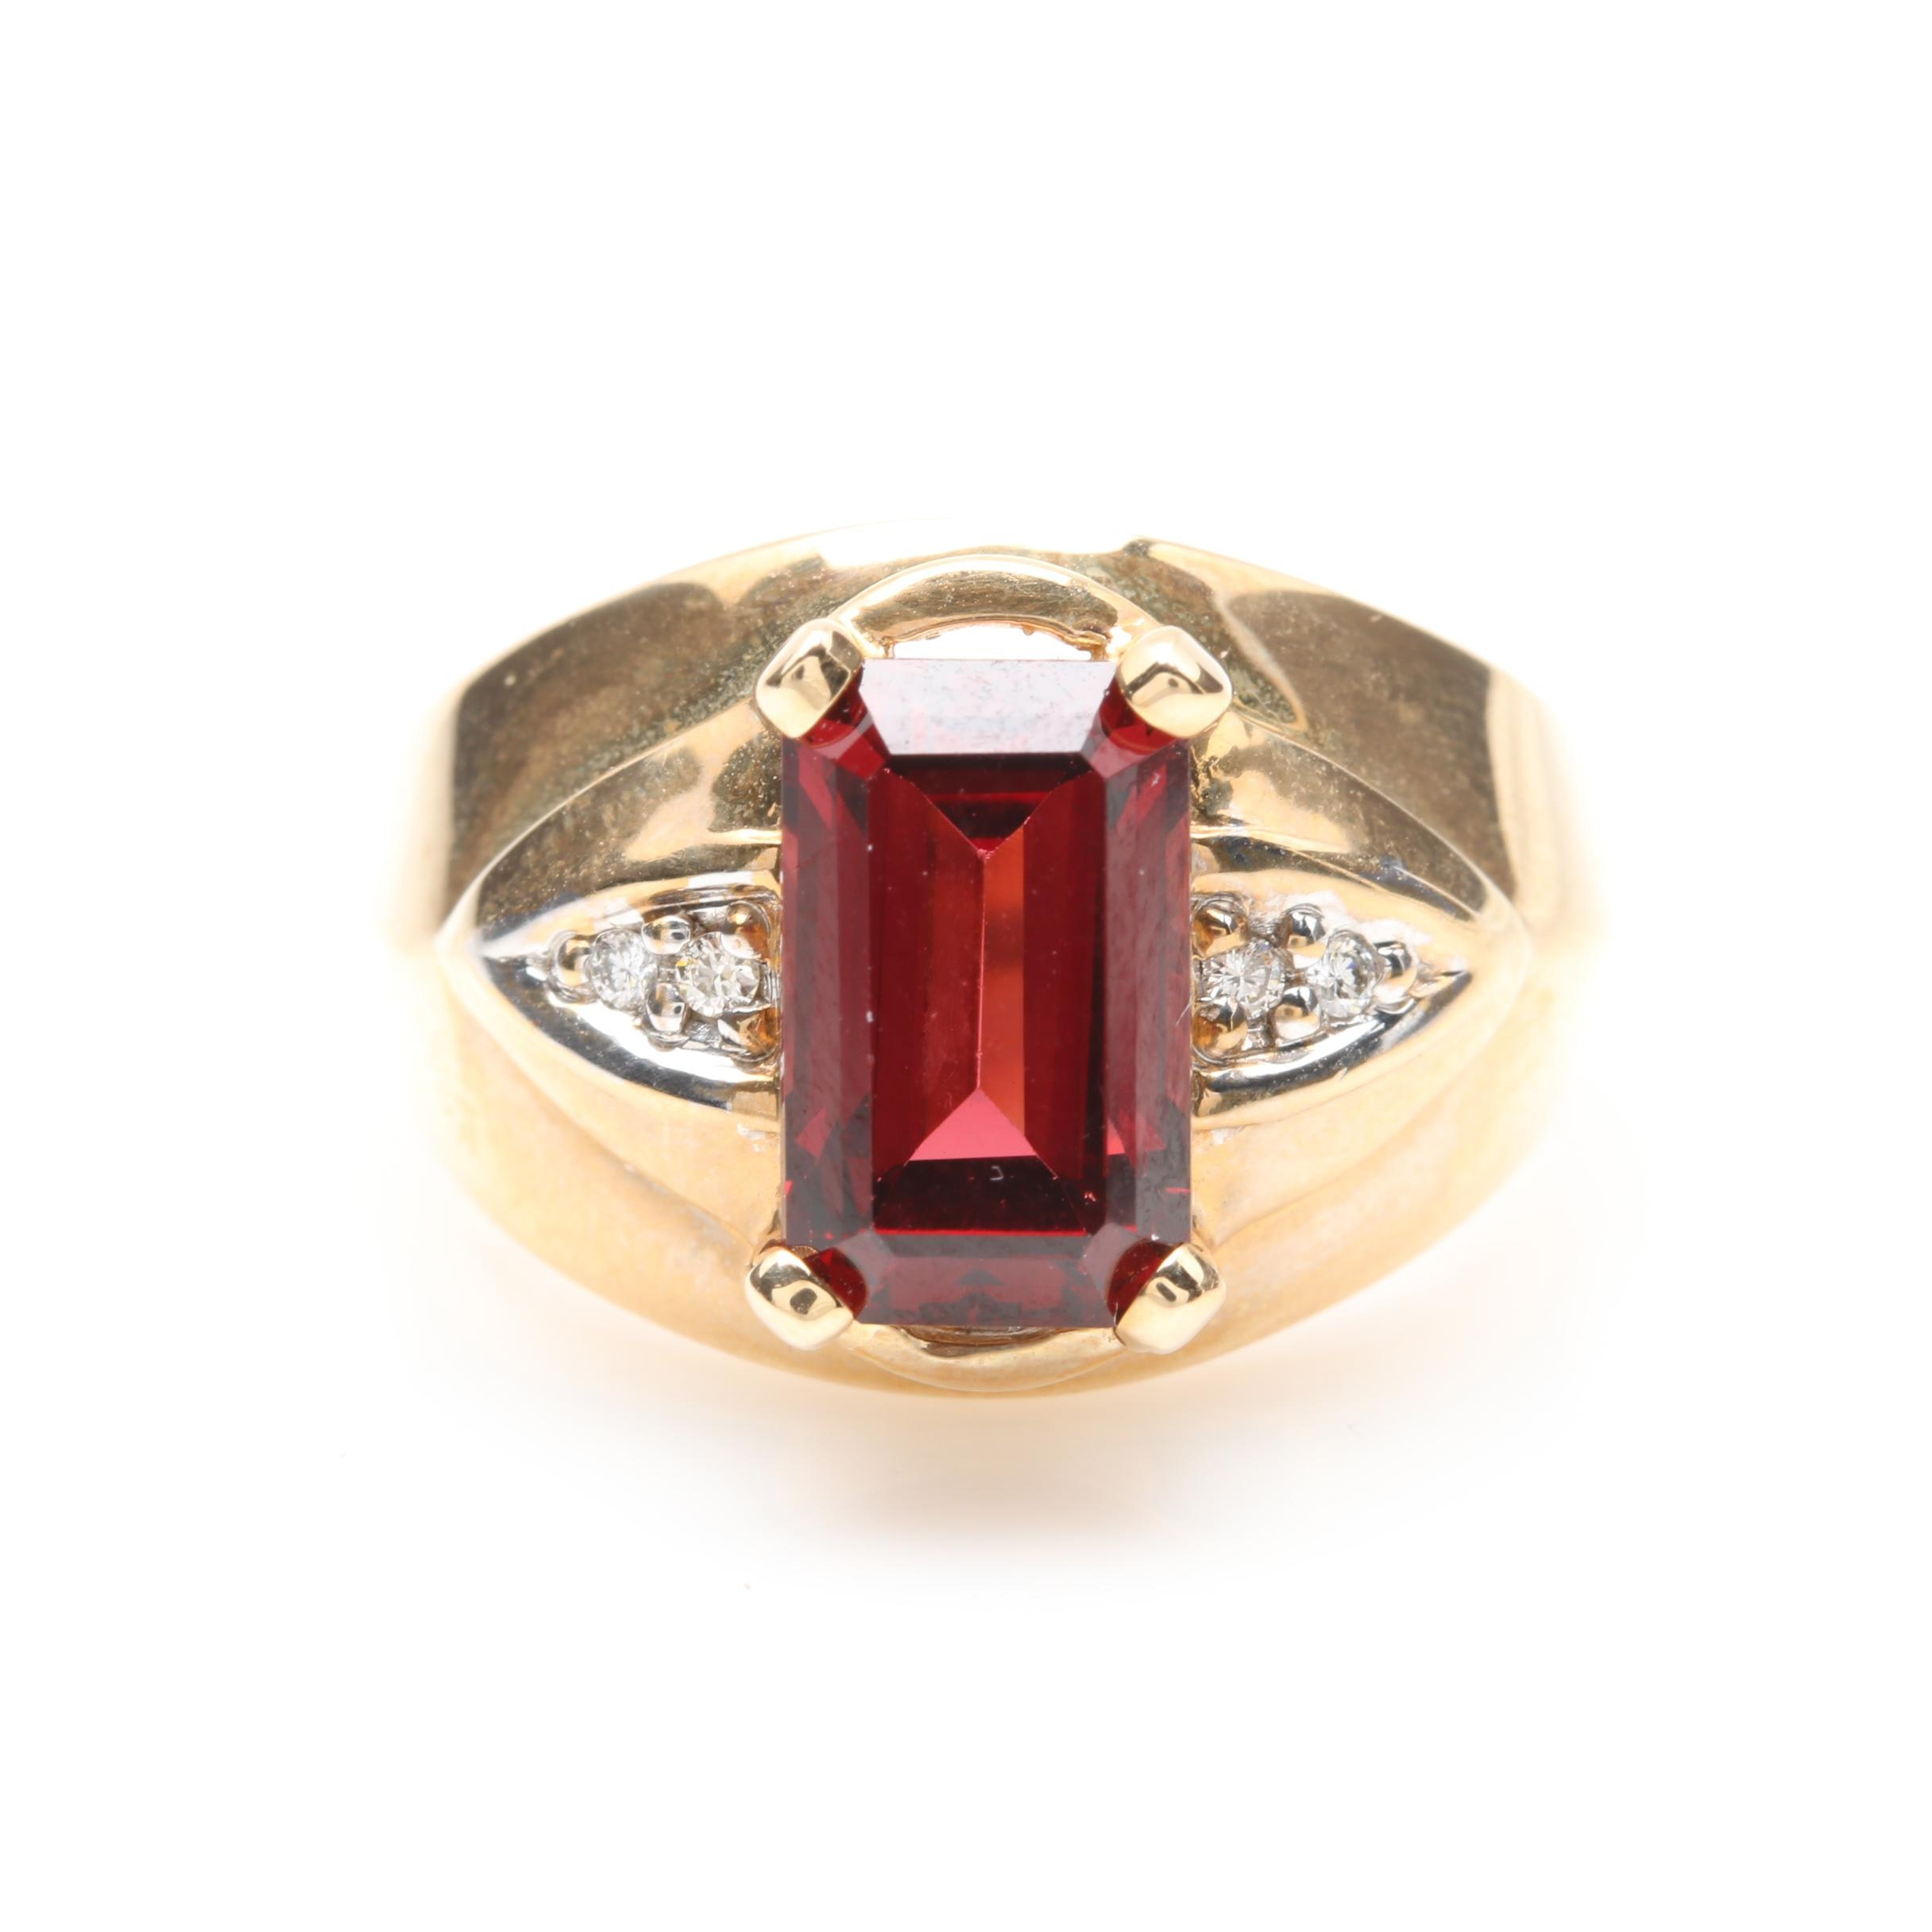 14K Yellow Gold 4.25 CT Rhodolite Garnet and Diamond Ring